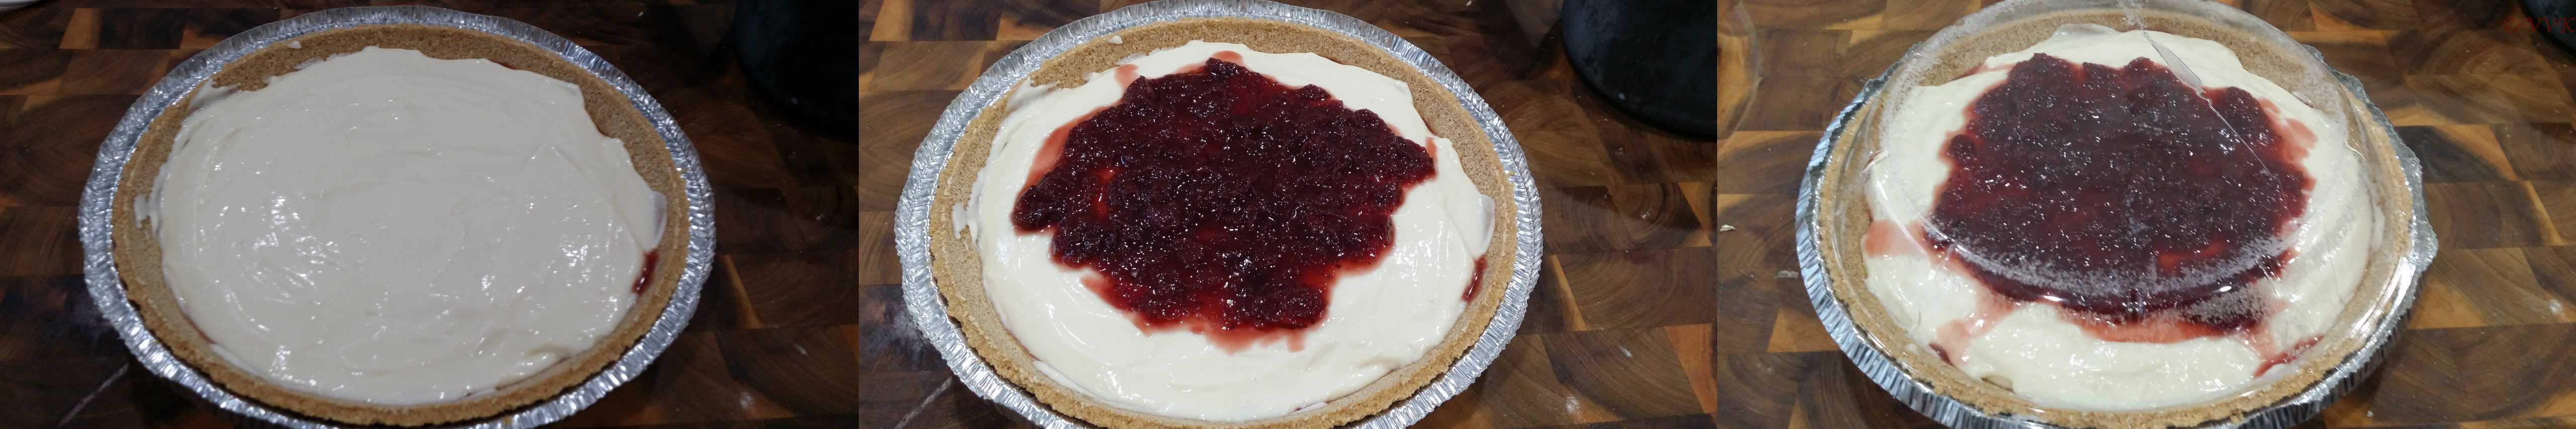 Adding the 3 tbsps of cranberry sauce on the top of the cake